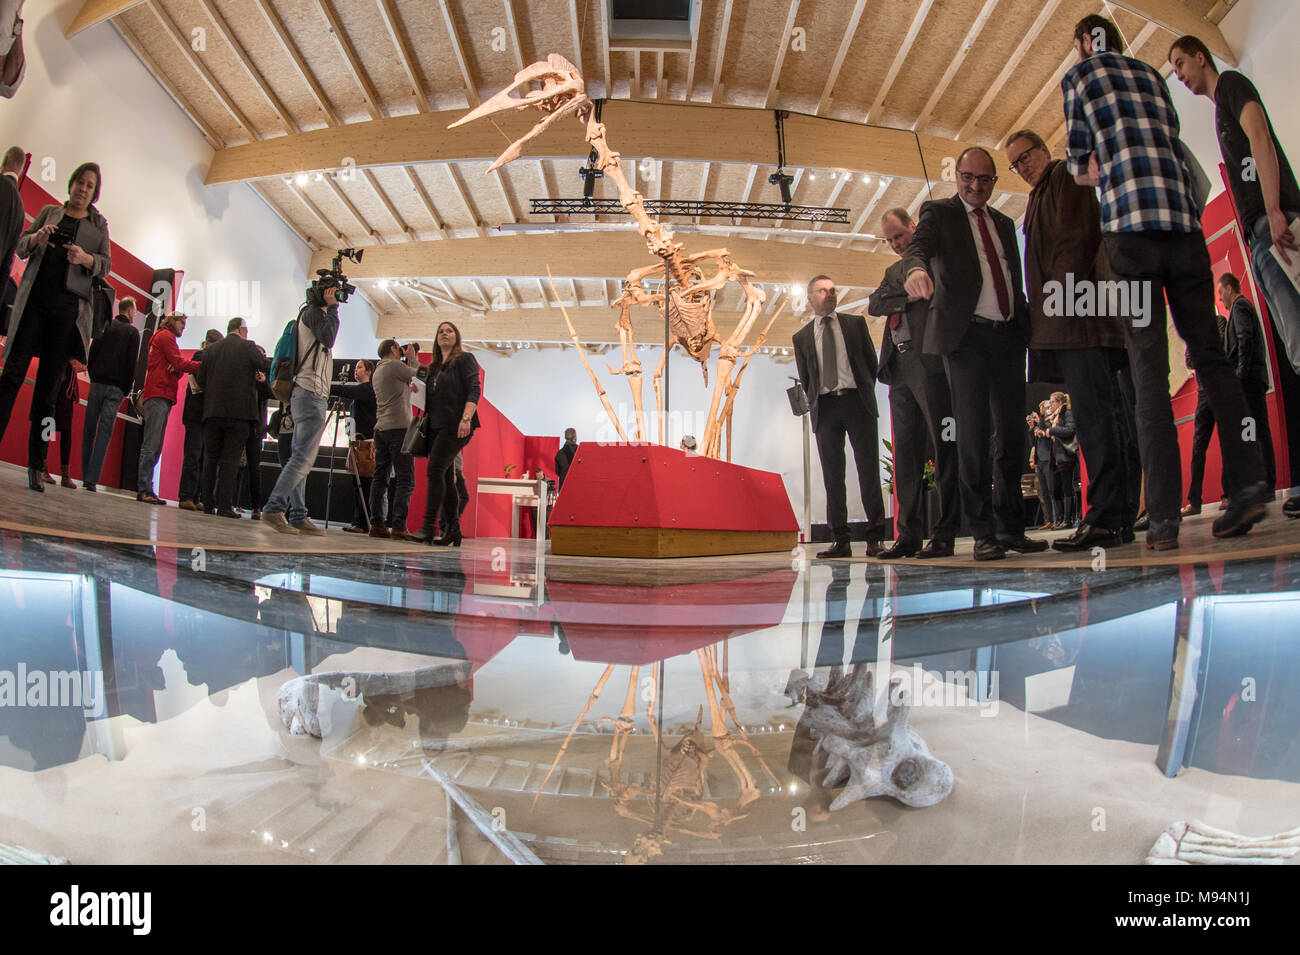 Denkendorf, Germany. 22 March 2018, The model of a huge flying dinosaur hanging in the Dinosaur Museum. The most probably biggest discovered flying dinosaur with a twelve metre wing-span and weighing half a ton is being presented on Thursday. Photo: Armin Weigel/dpa Credit: dpa picture alliance/Alamy Live News - Stock Image